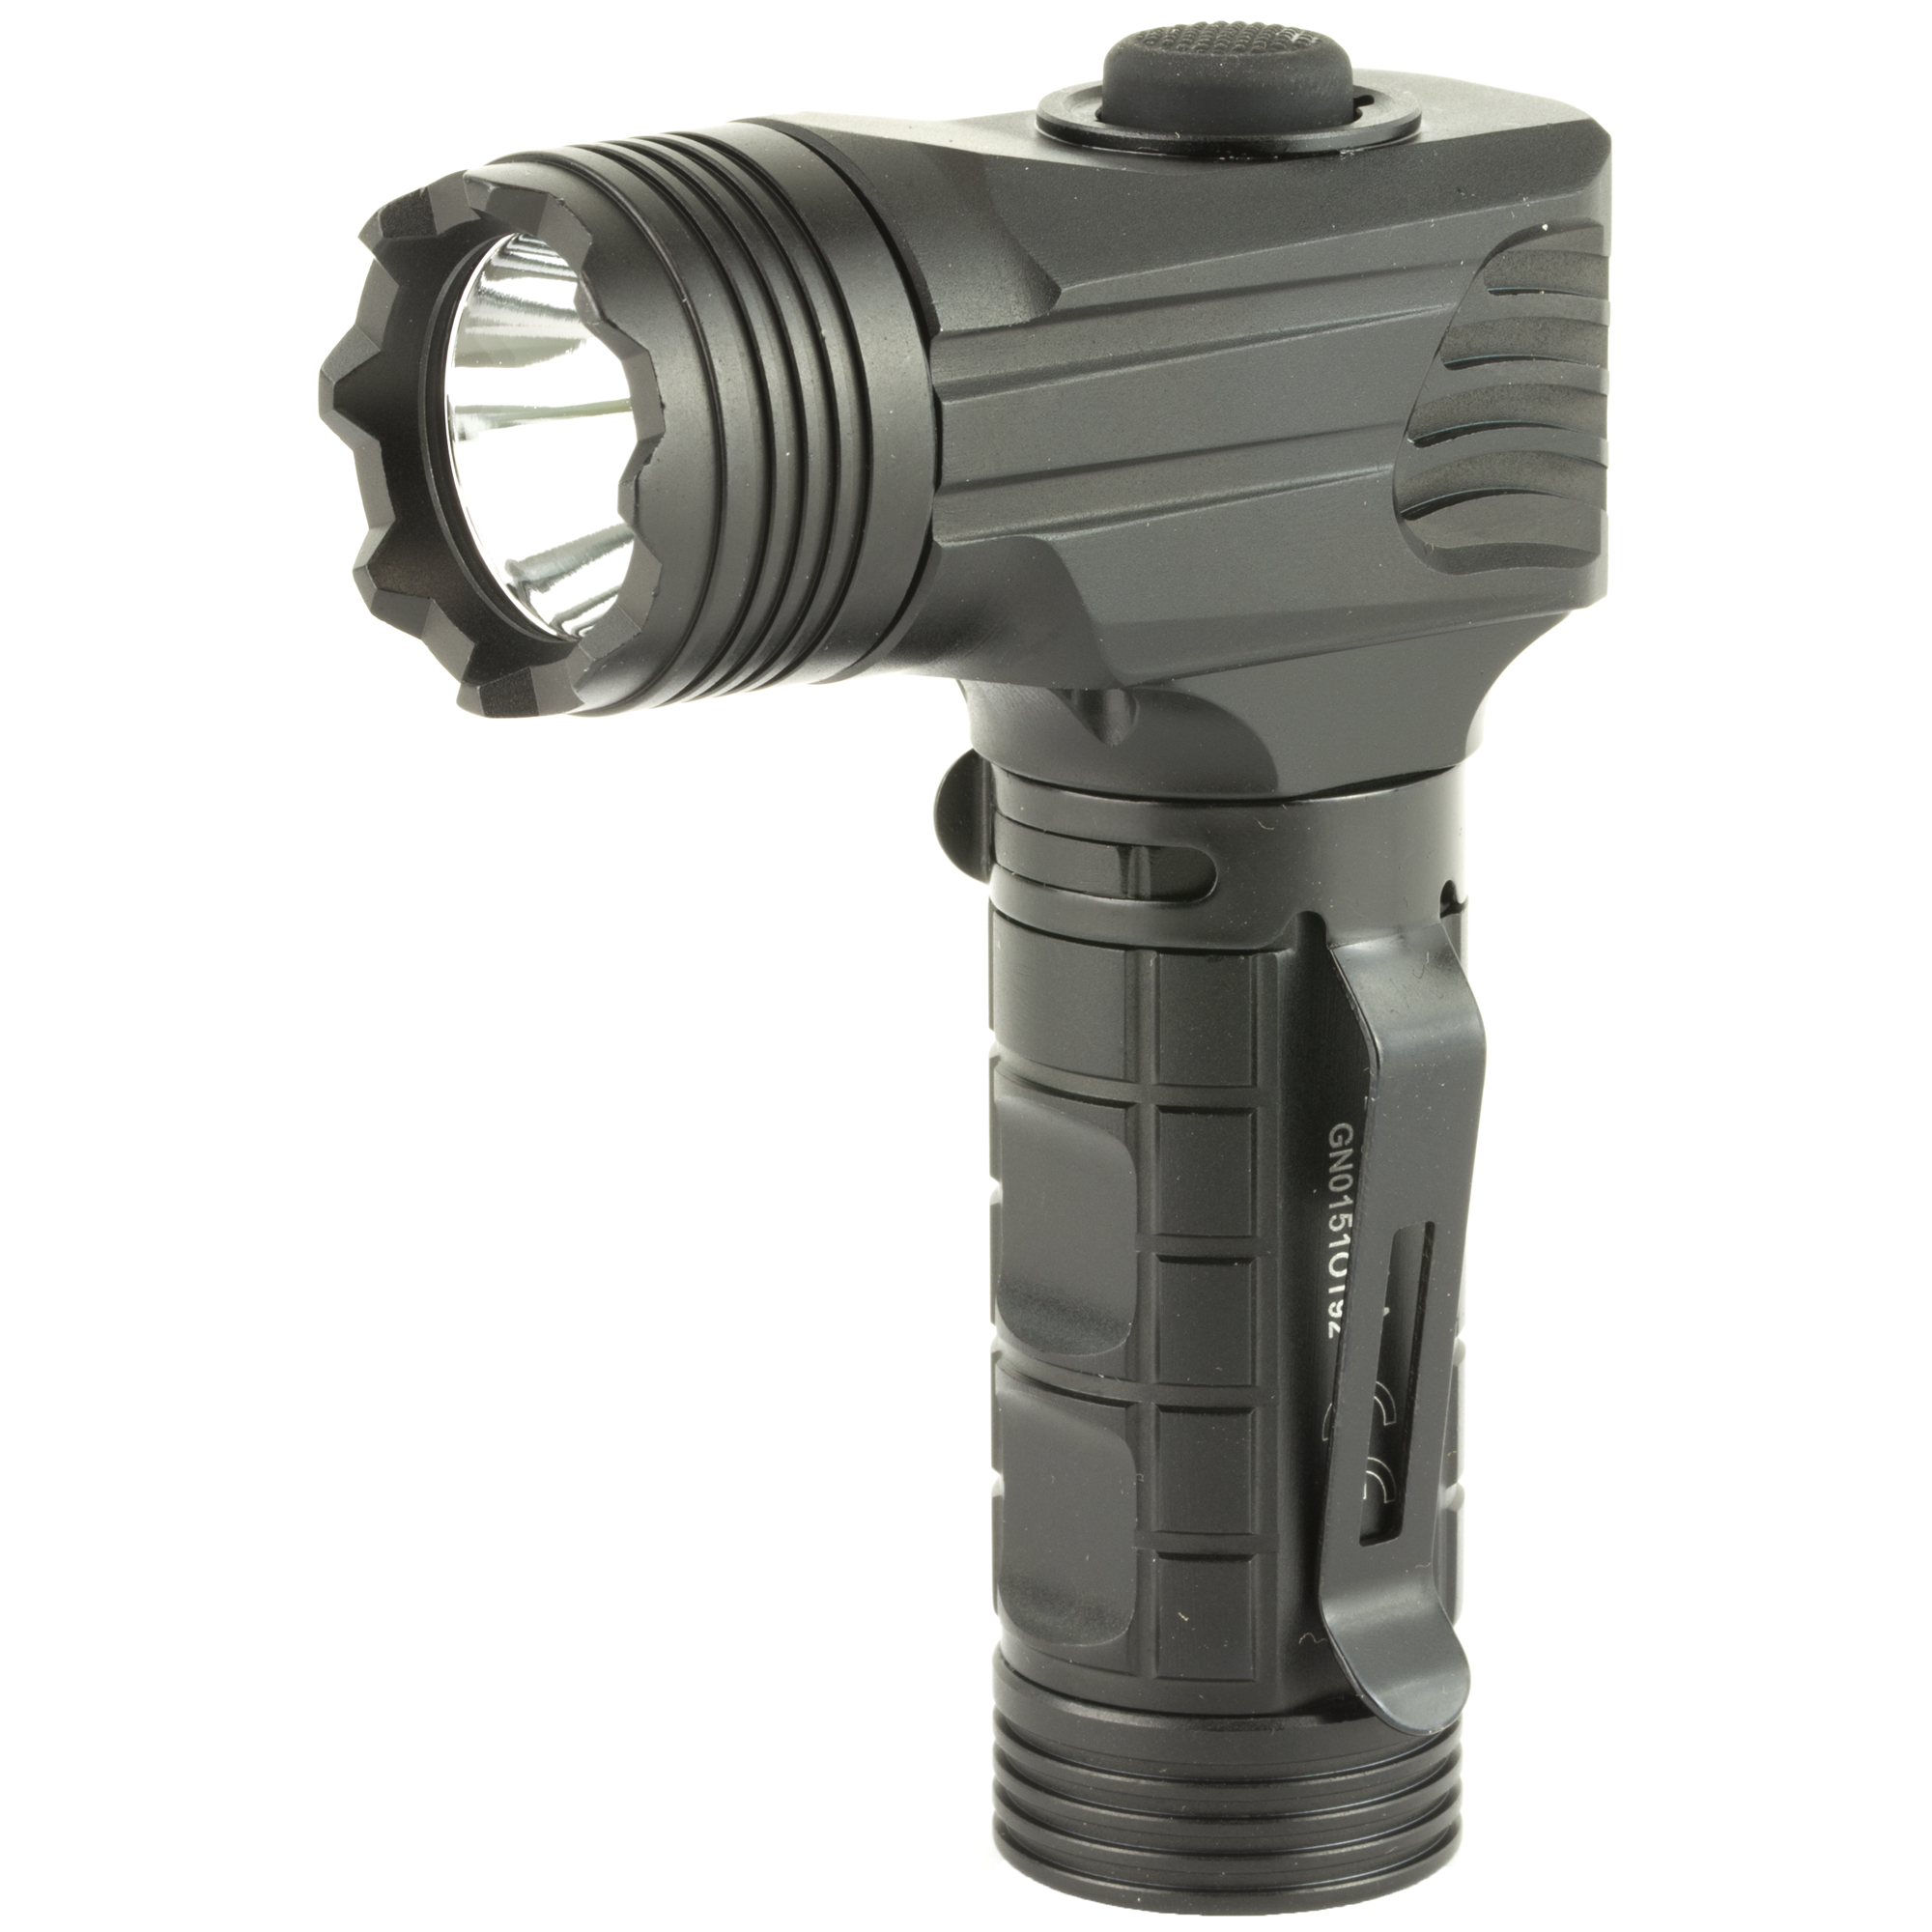 An excellent tactical light offering from UTG.